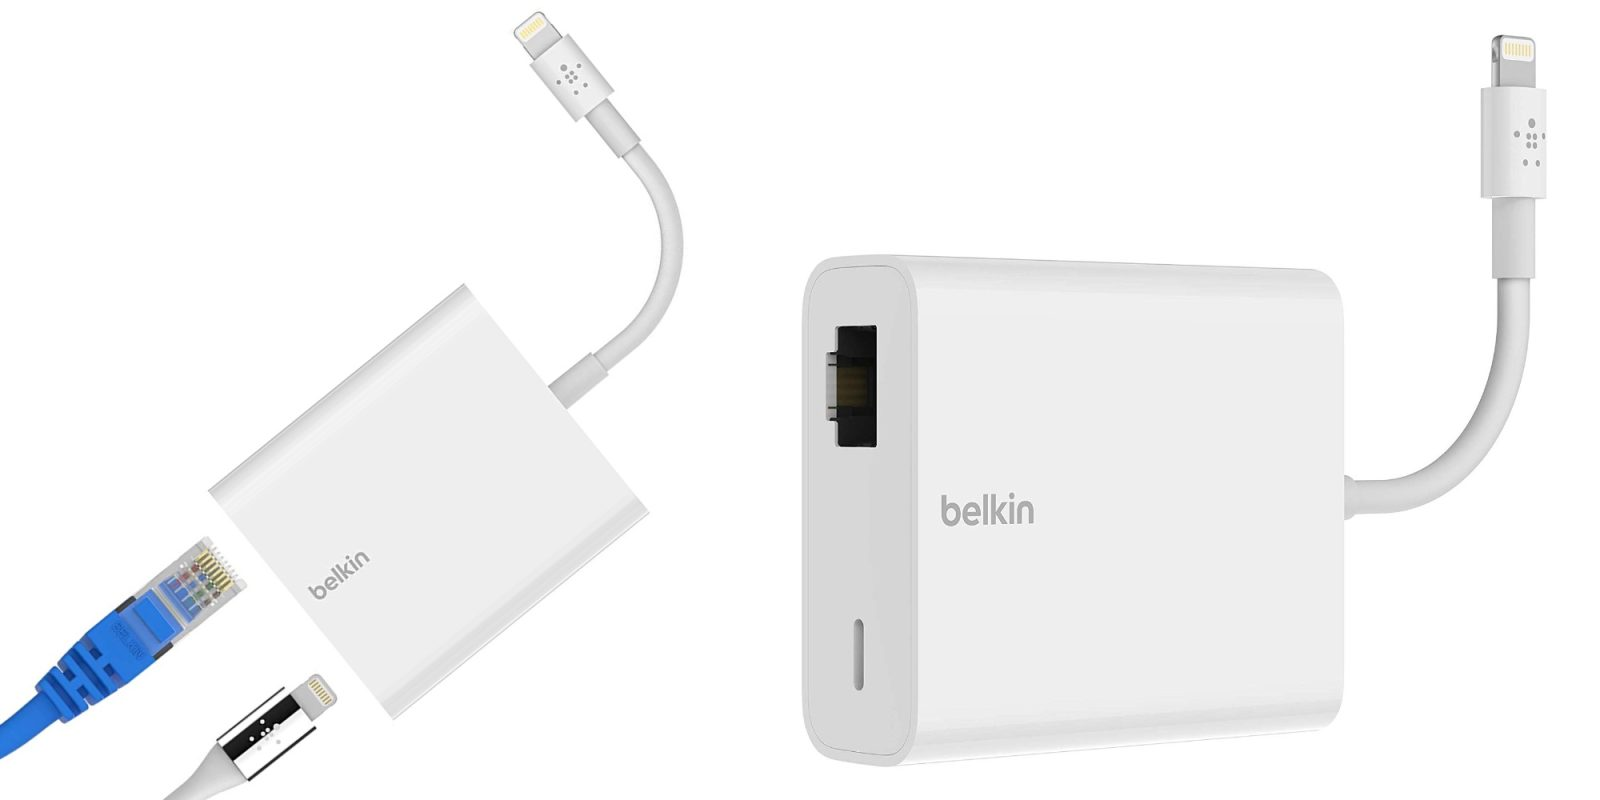 Belkin's Ethernet + Power Adapter for iPad gets nearly 30% discount to new low